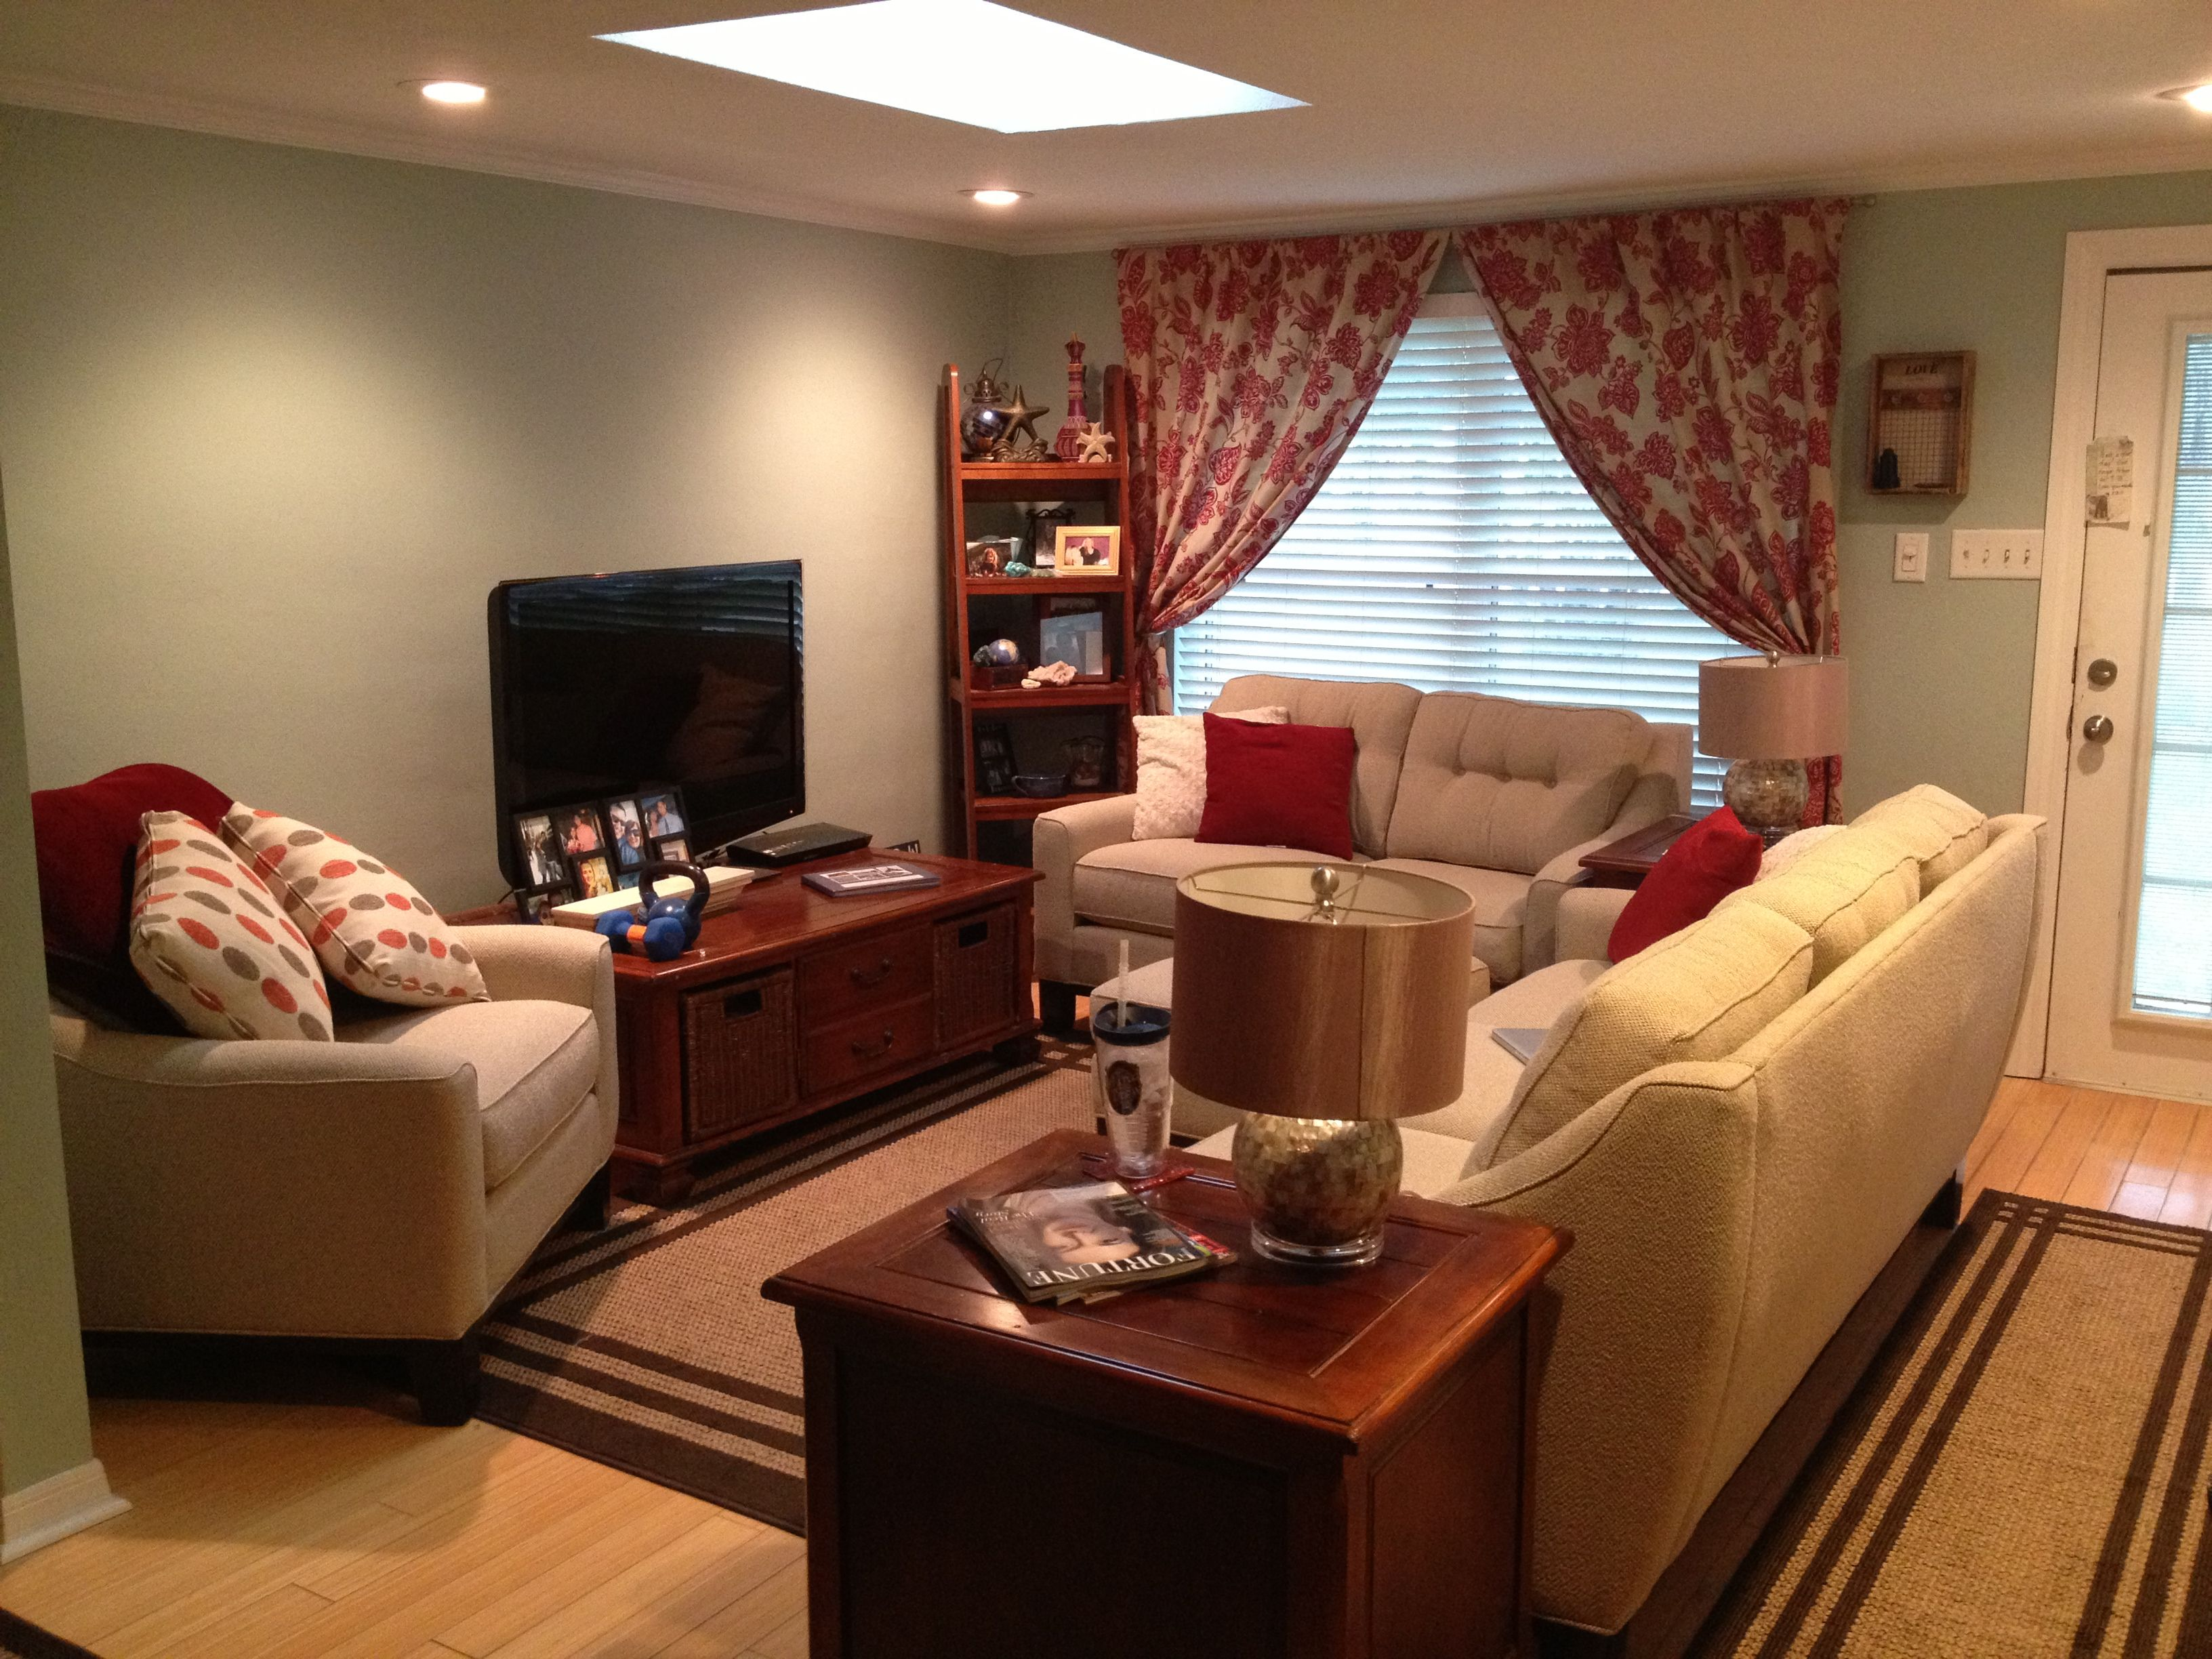 Small living room design and decoration